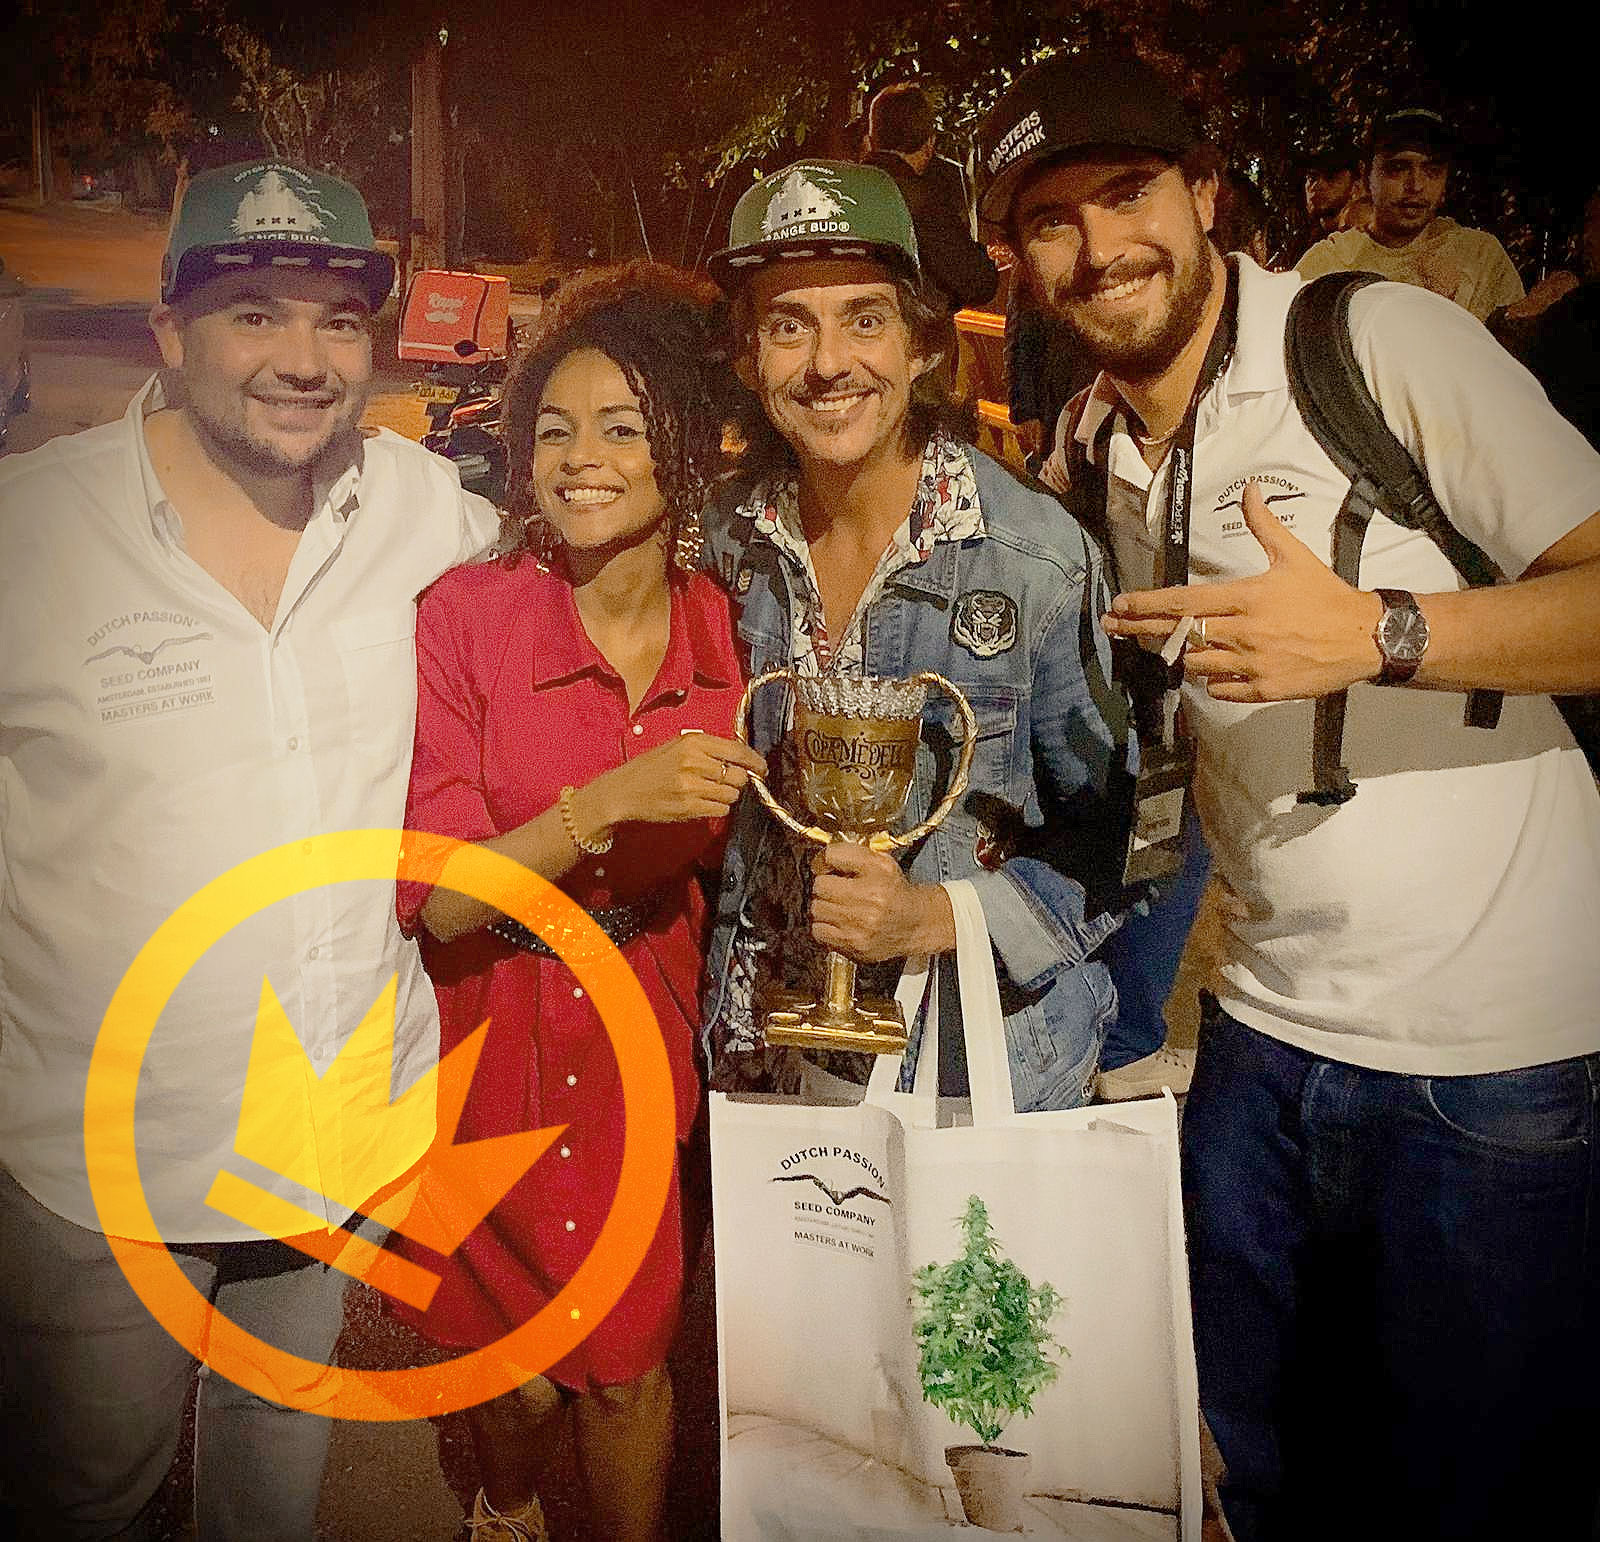 Dutch Passion Cannabis Cup 1st Prize at the Copa Medellin with Desfrán!